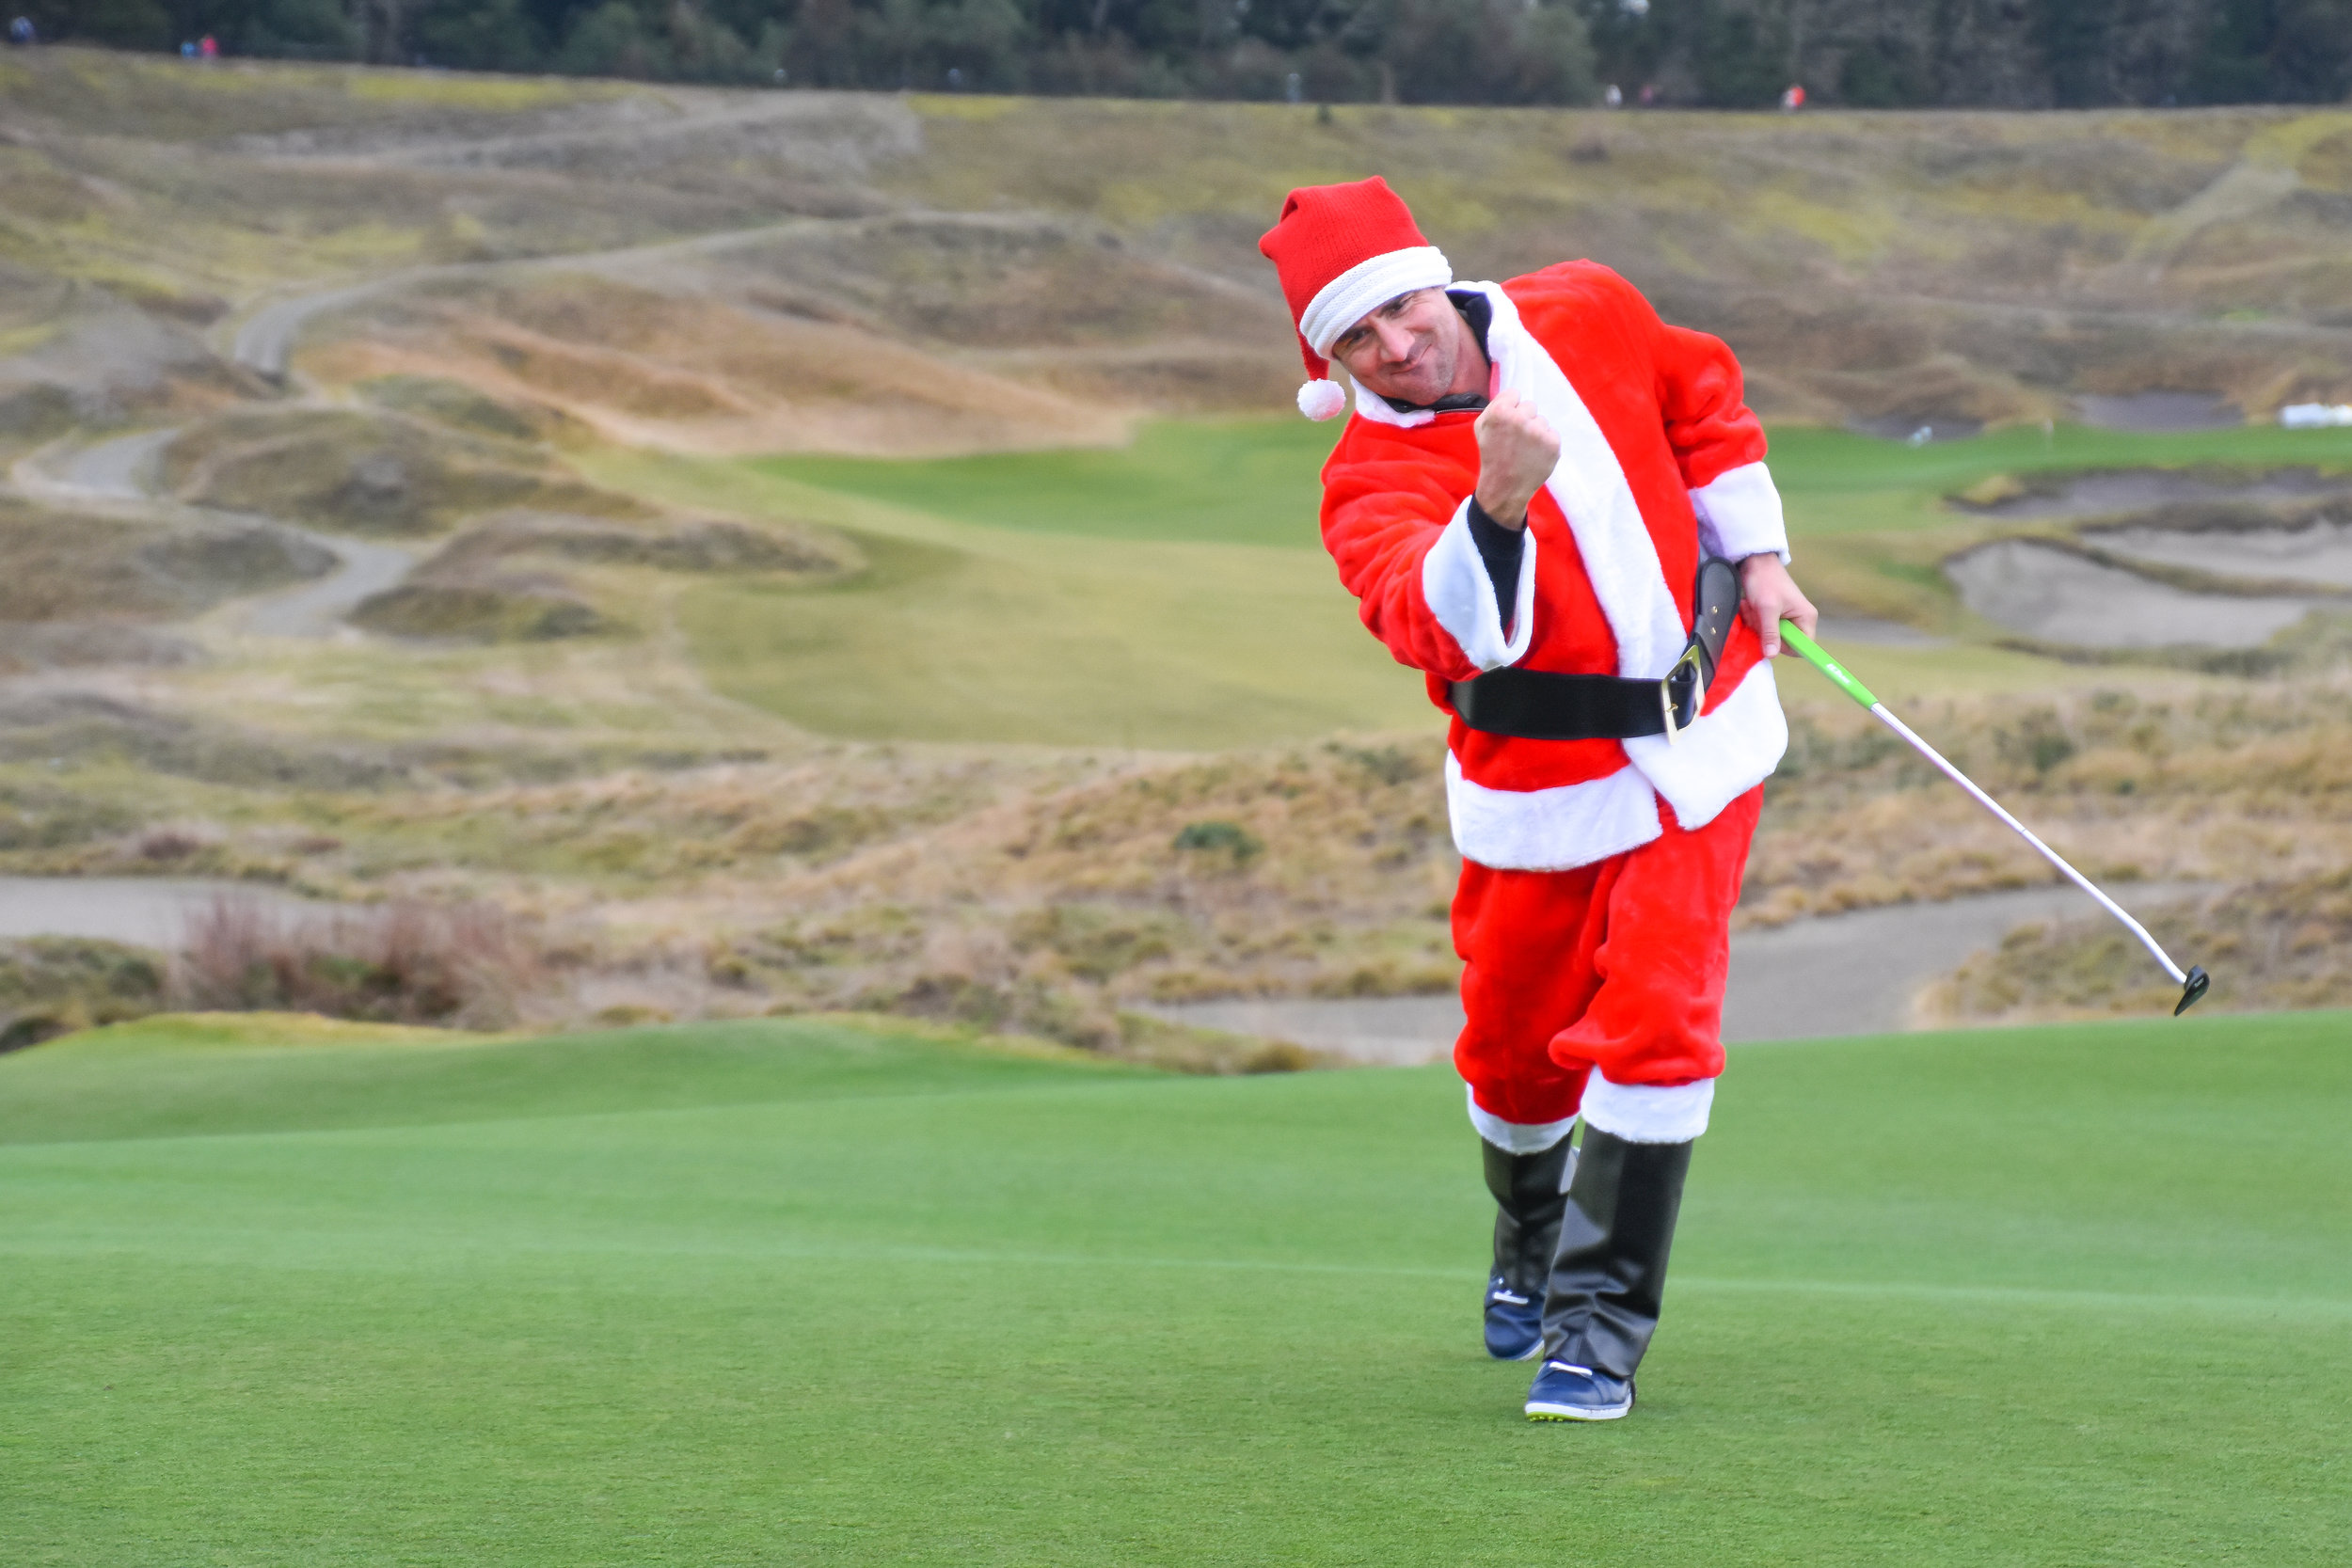 The Santa fist pump is second only to the Tiger fist pump.